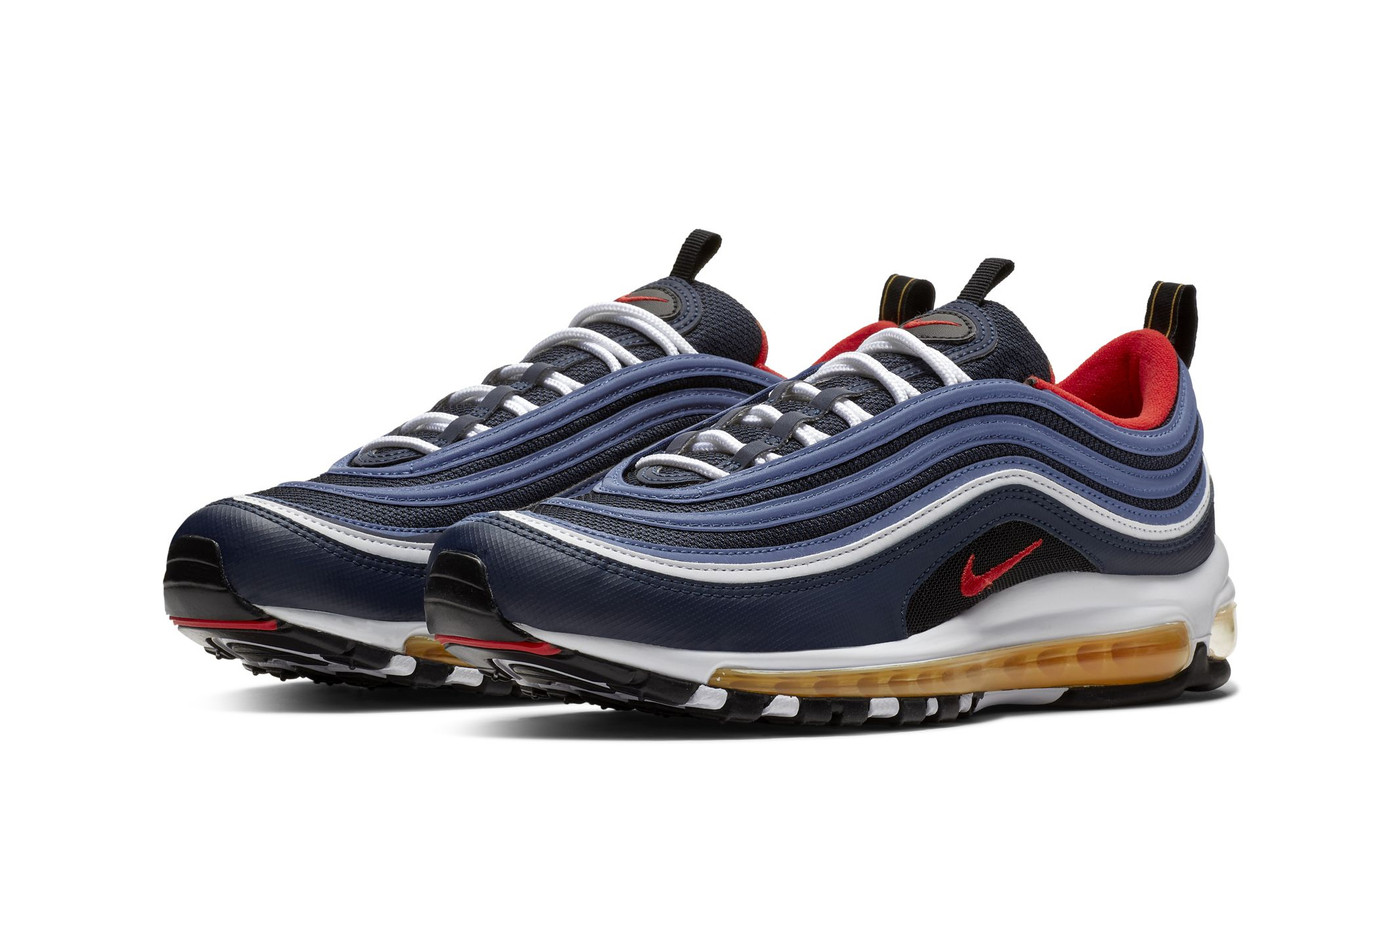 nike-air-max-97-suits-up-in-midnight-navy-habanero-red-02